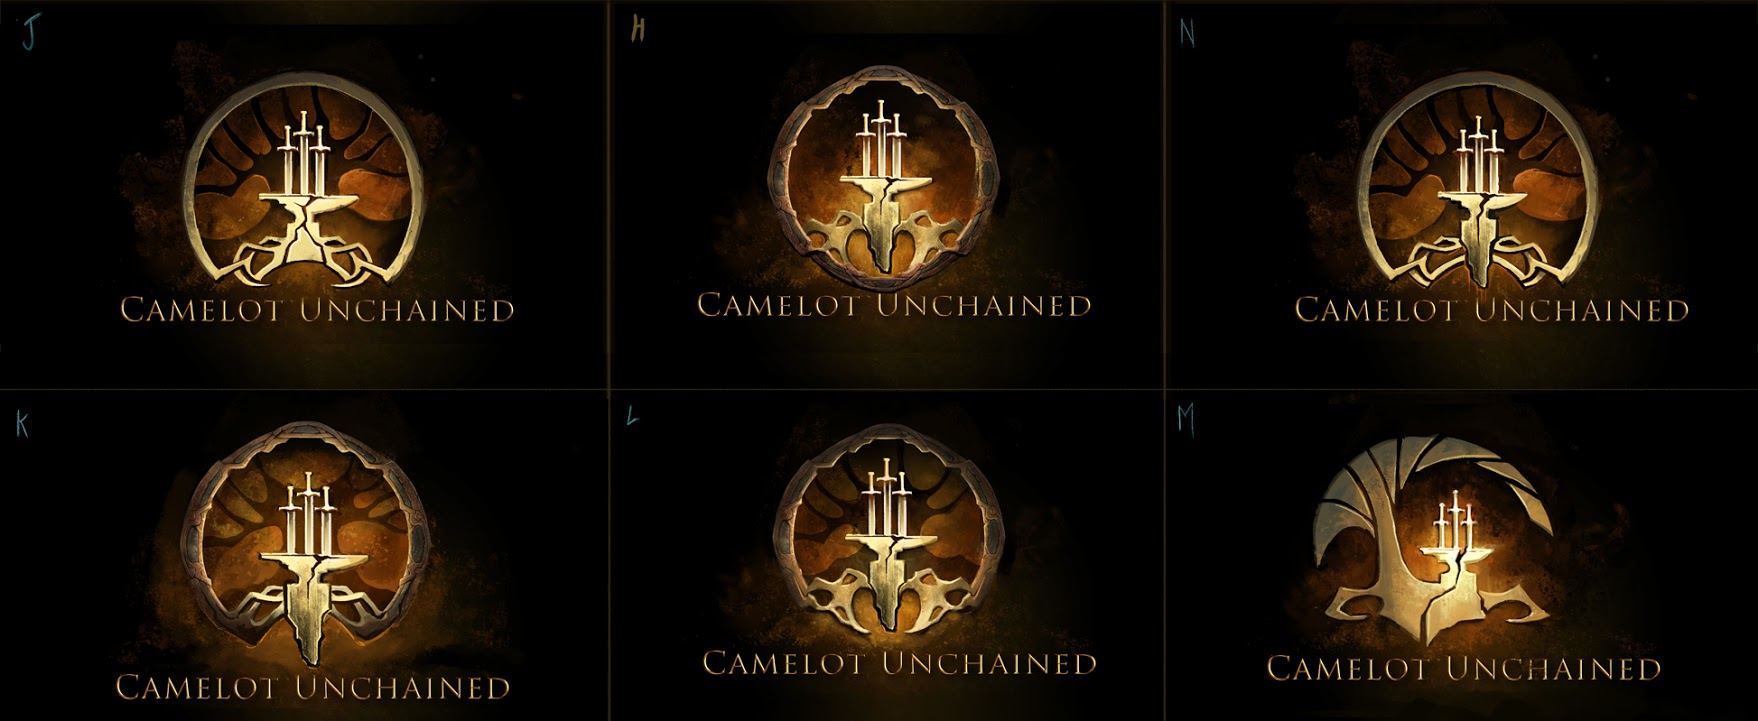 6 variations for Camelot Unchained logo © 2105 City State entertainment